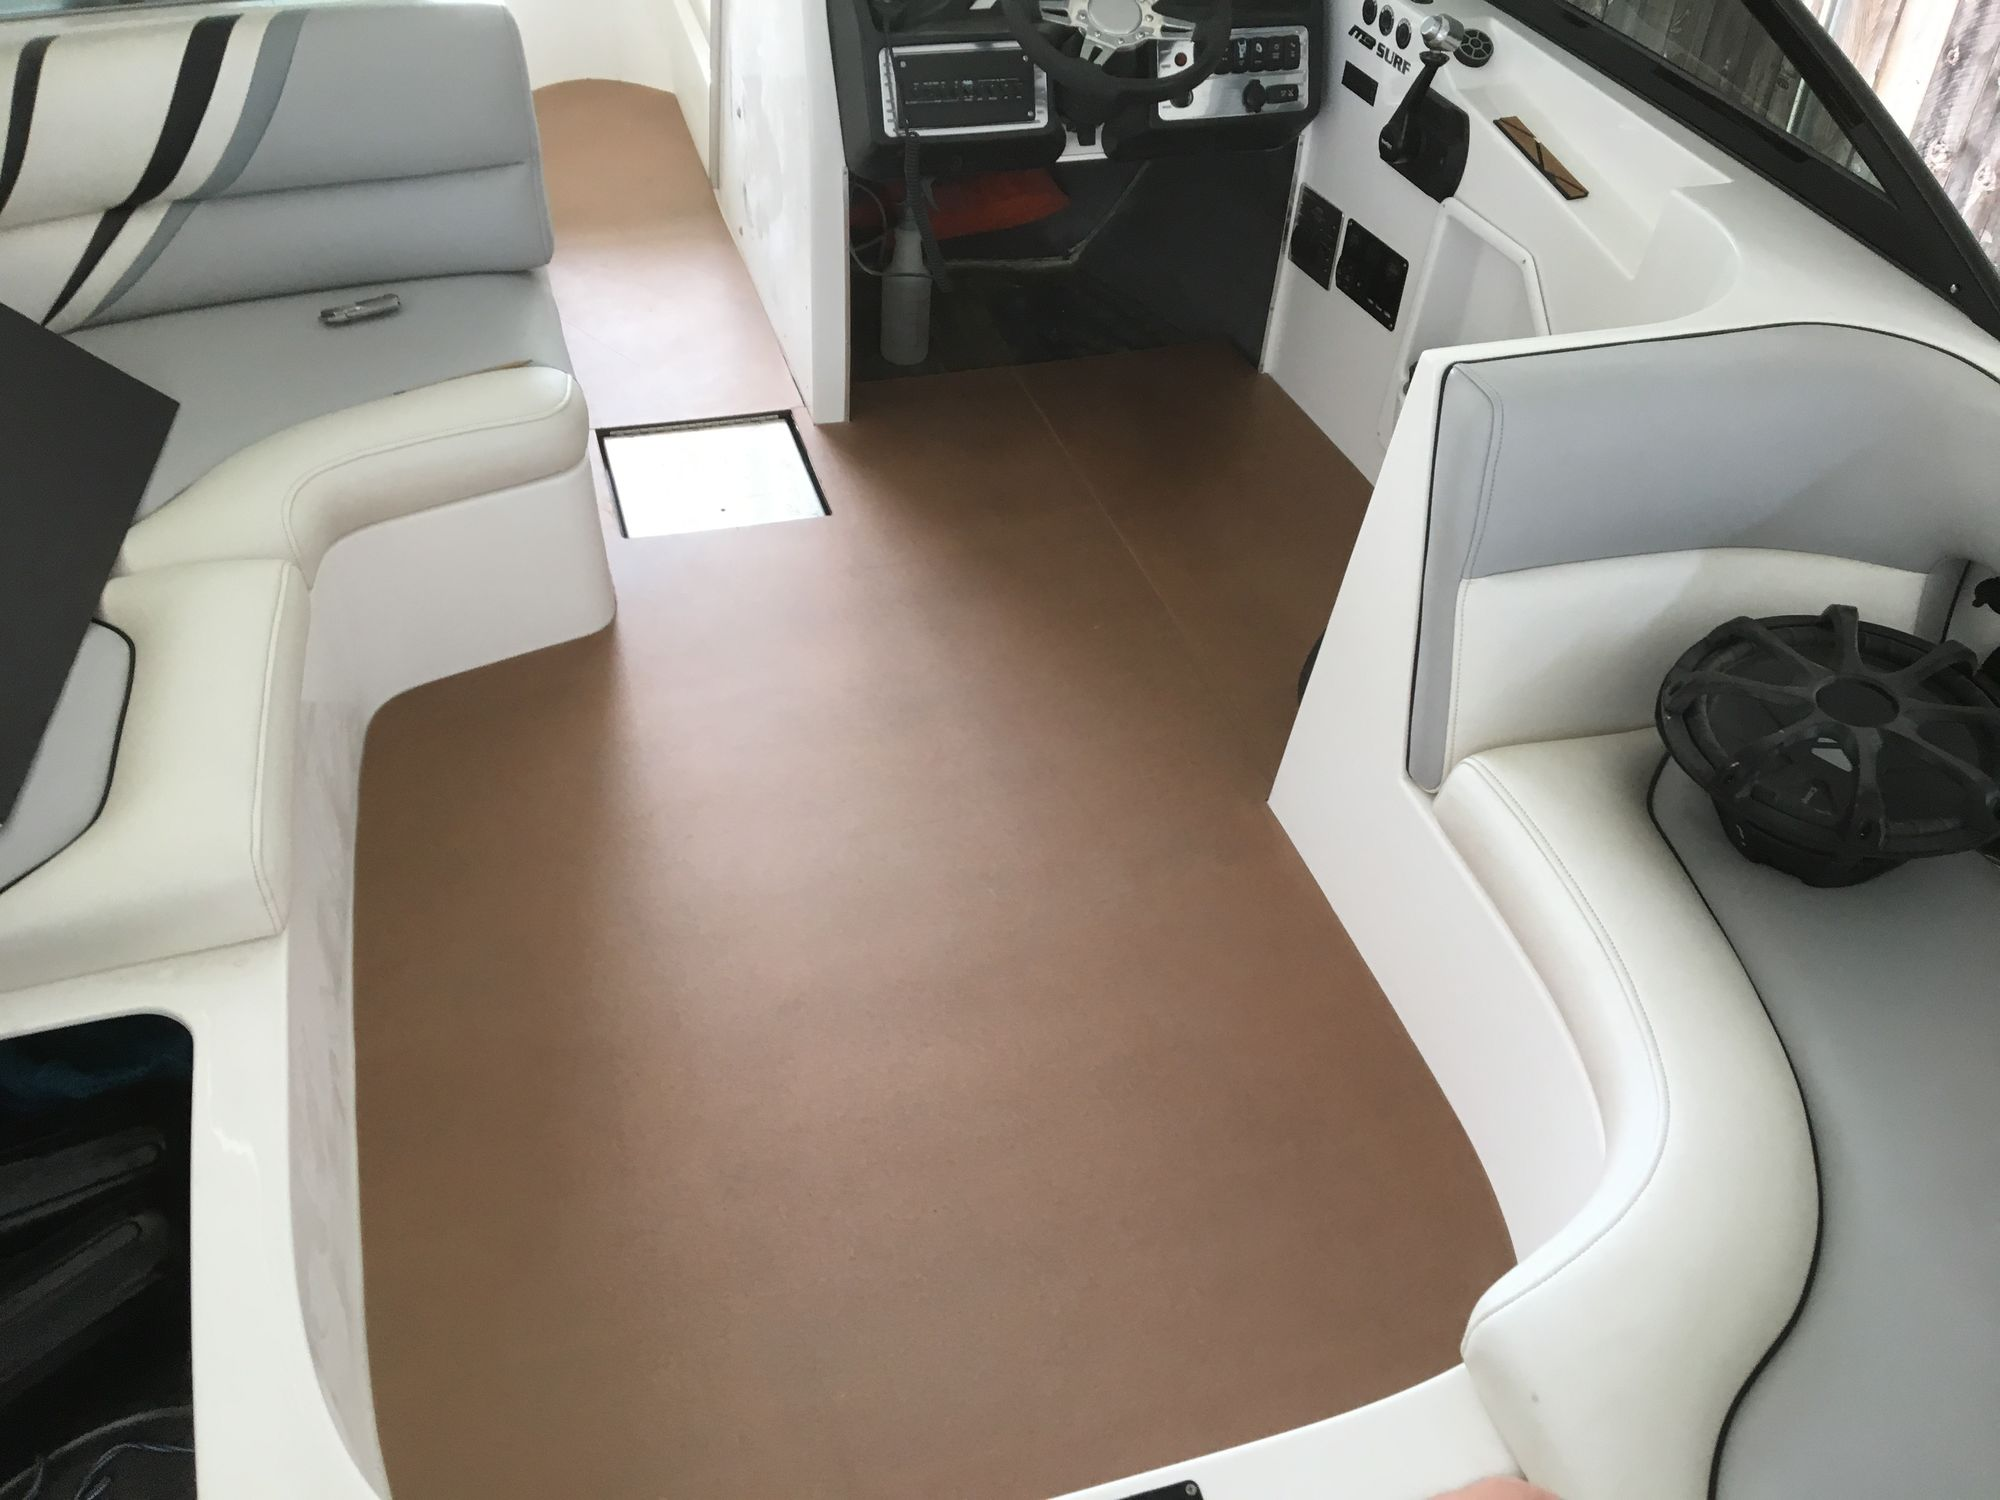 floor a flooring on hydrodeck solutions luxury marine the boat lanier bow water ga lake services walkthrough